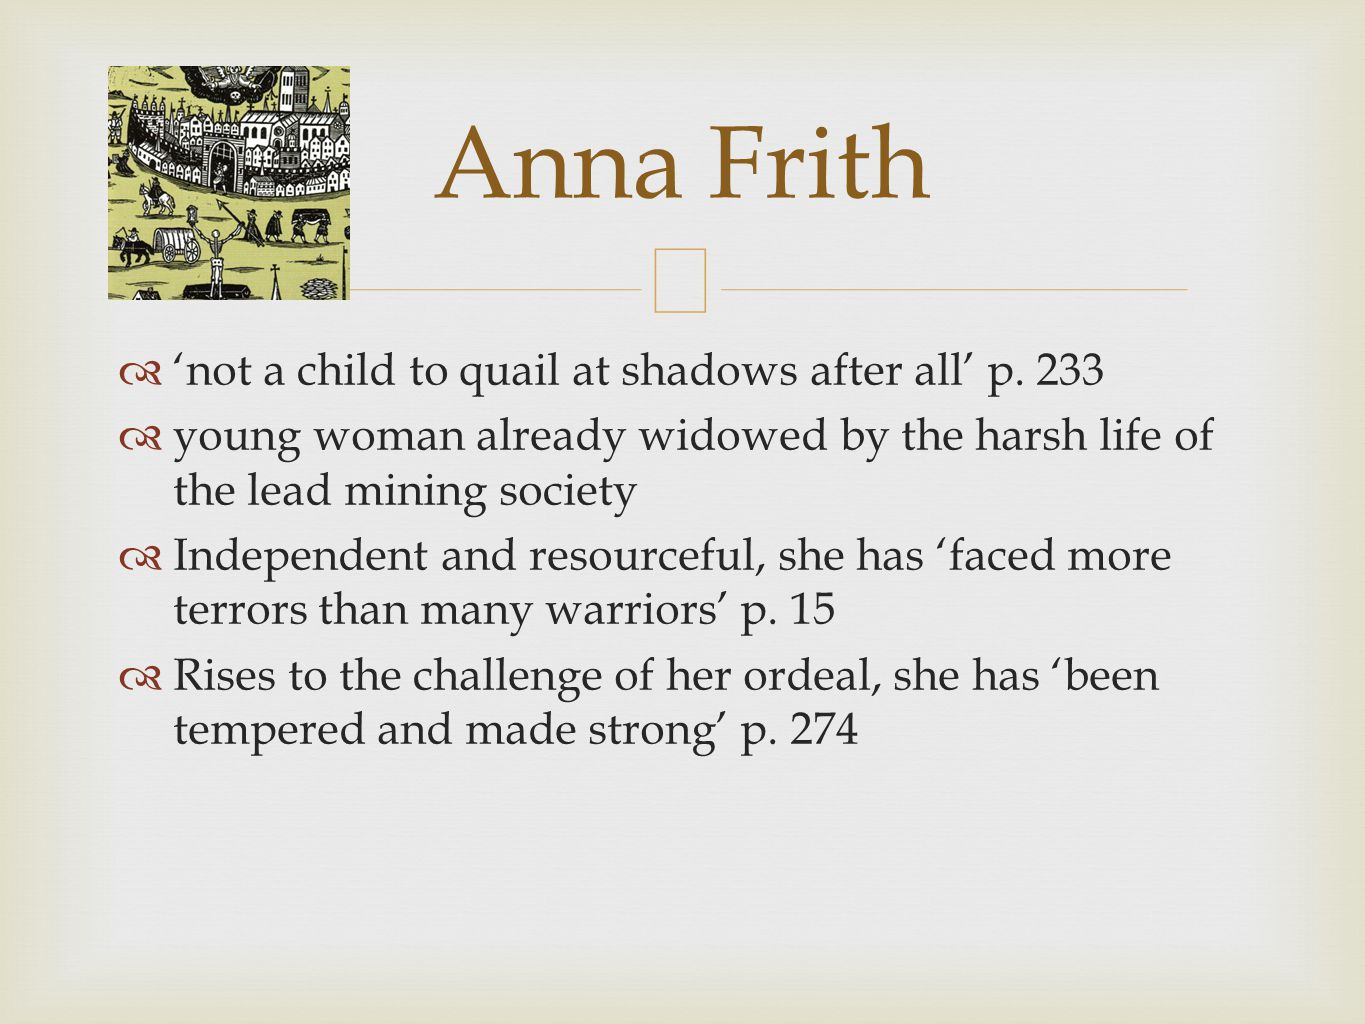 not a child to quail at shadows after all p. 233 young woman already widowed by the harsh life of the lead mining society Independent and resourceful,